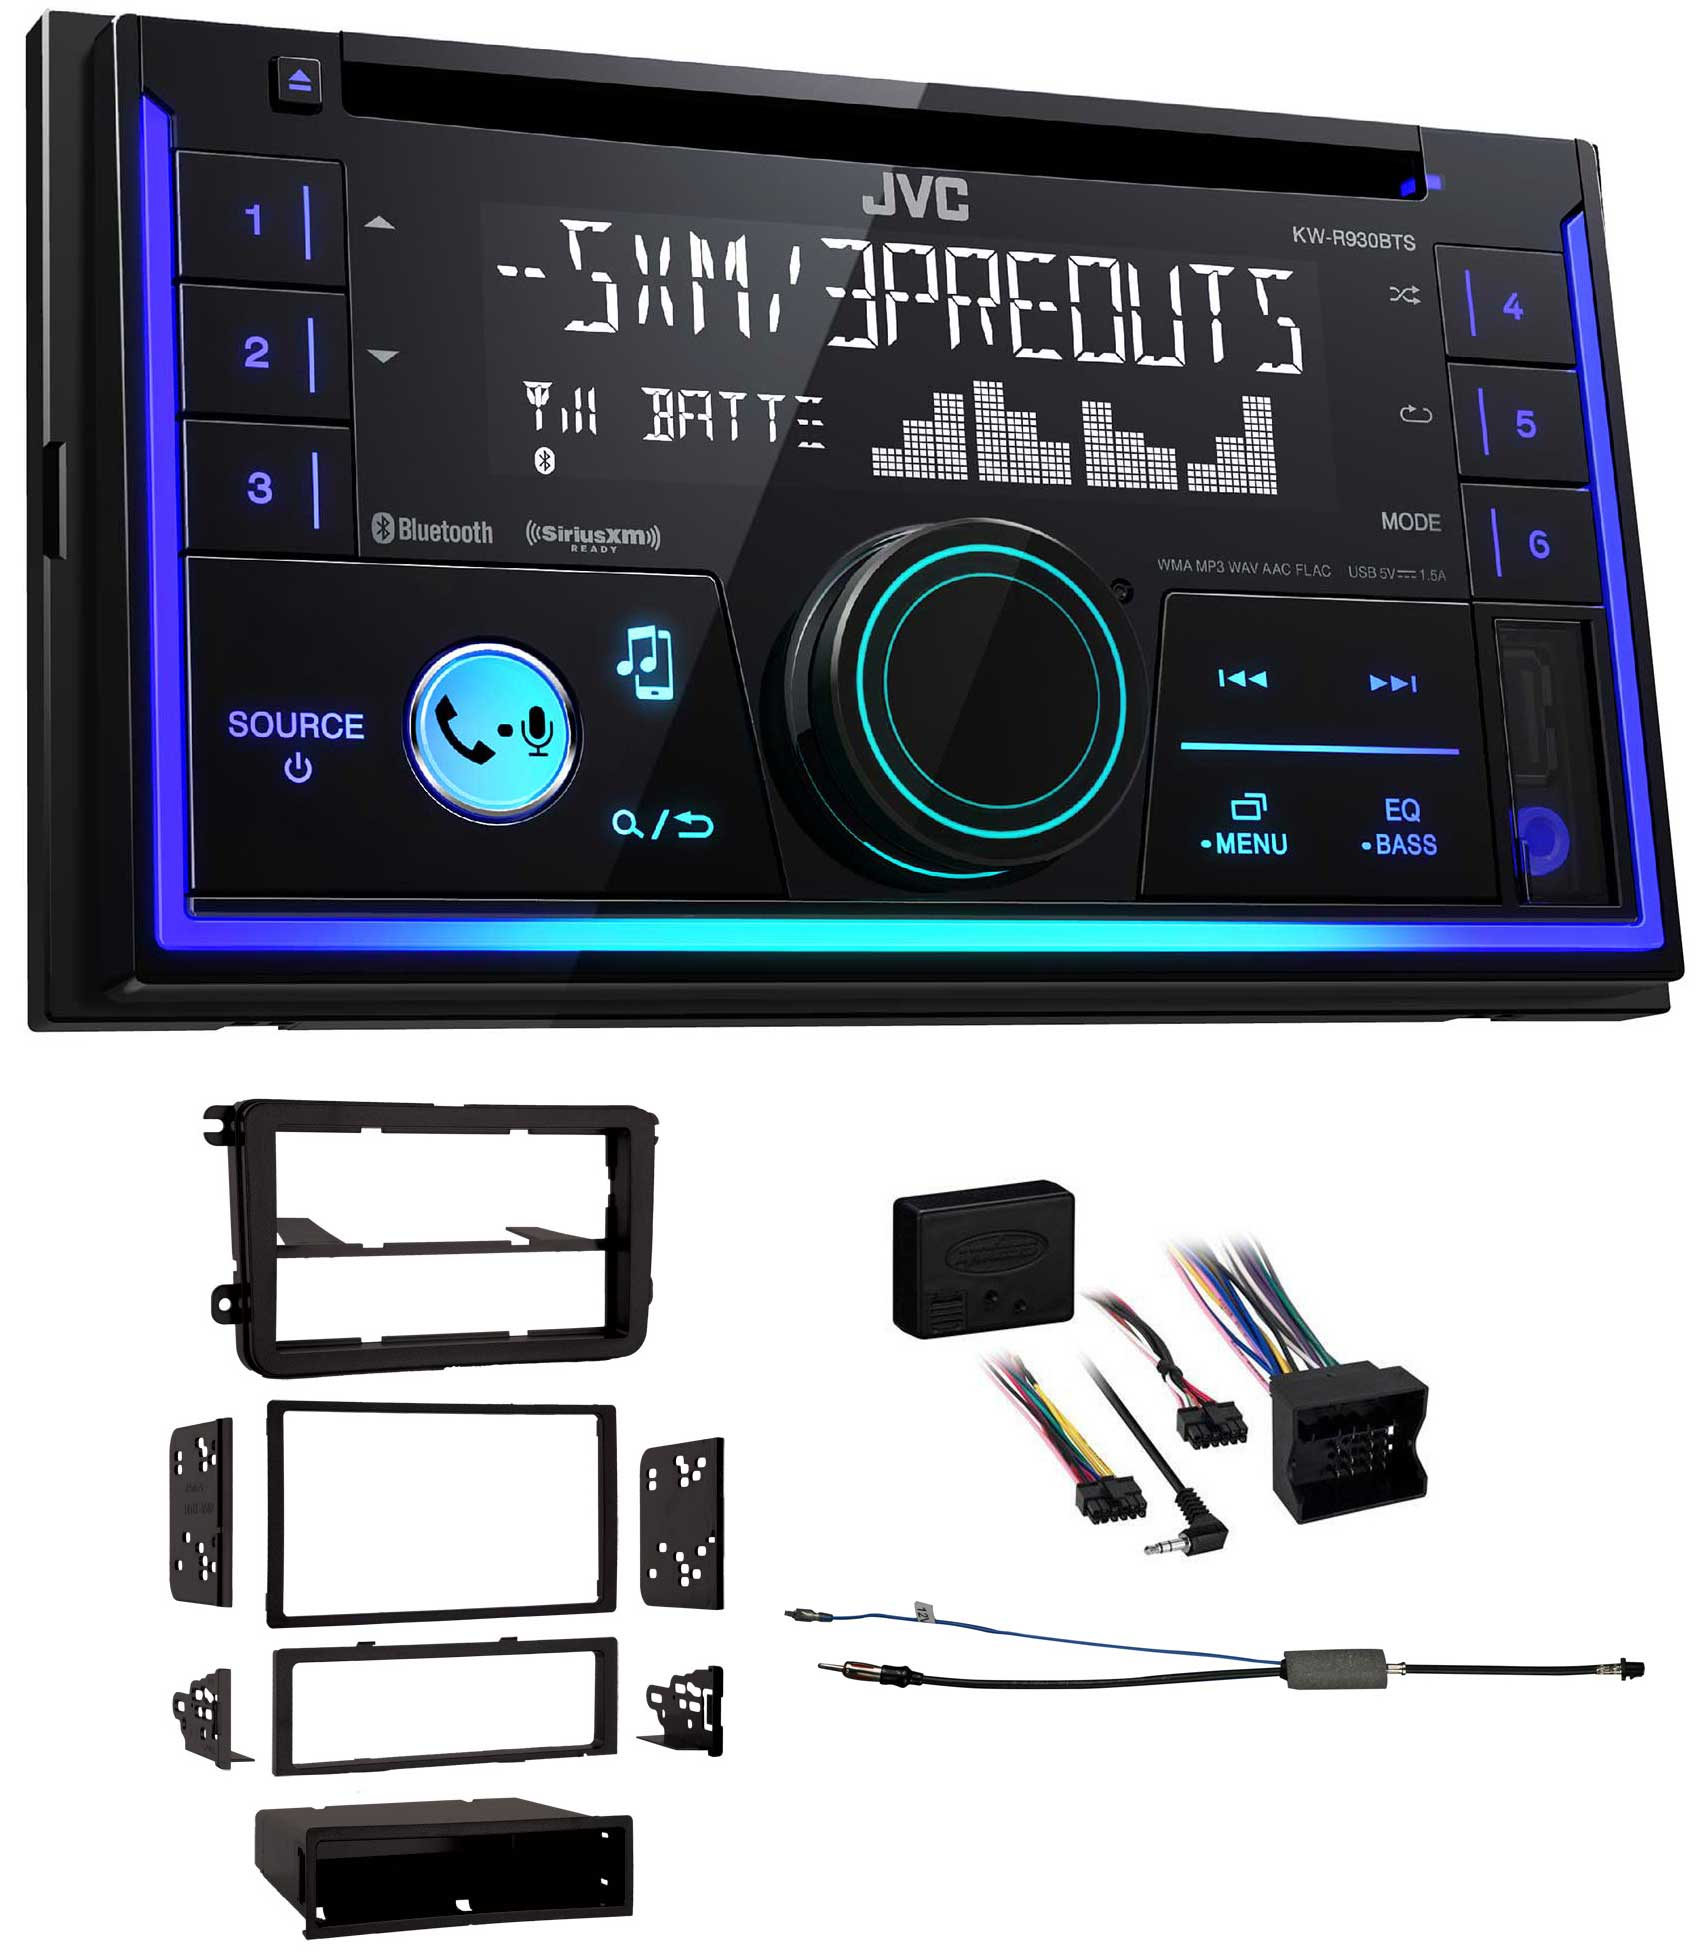 JVC KW-R930BTS 2-Din In-Dash Car Stereo CD Player w Bluetooth USB iPhone Sirius by JVC